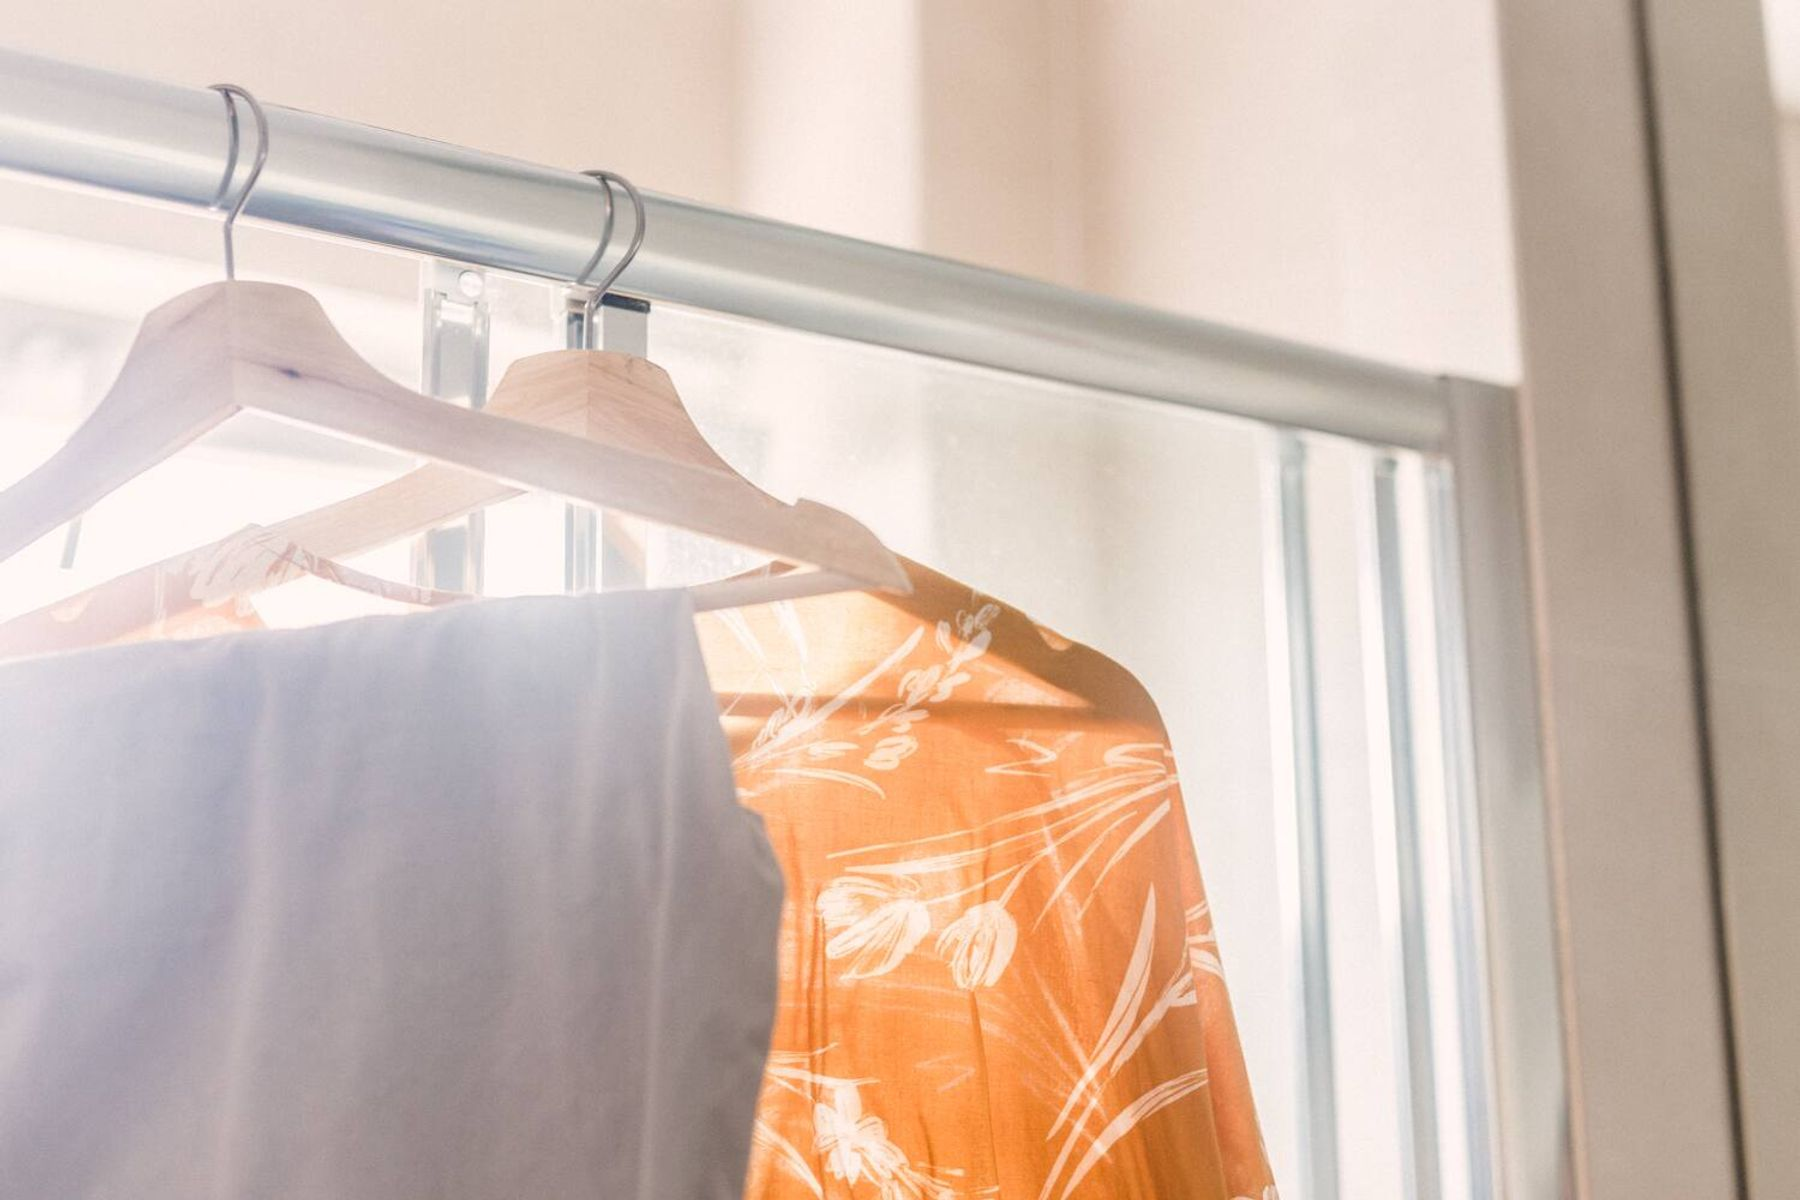 orange shirt with flower details and white pants on hangers in the bathroom stall